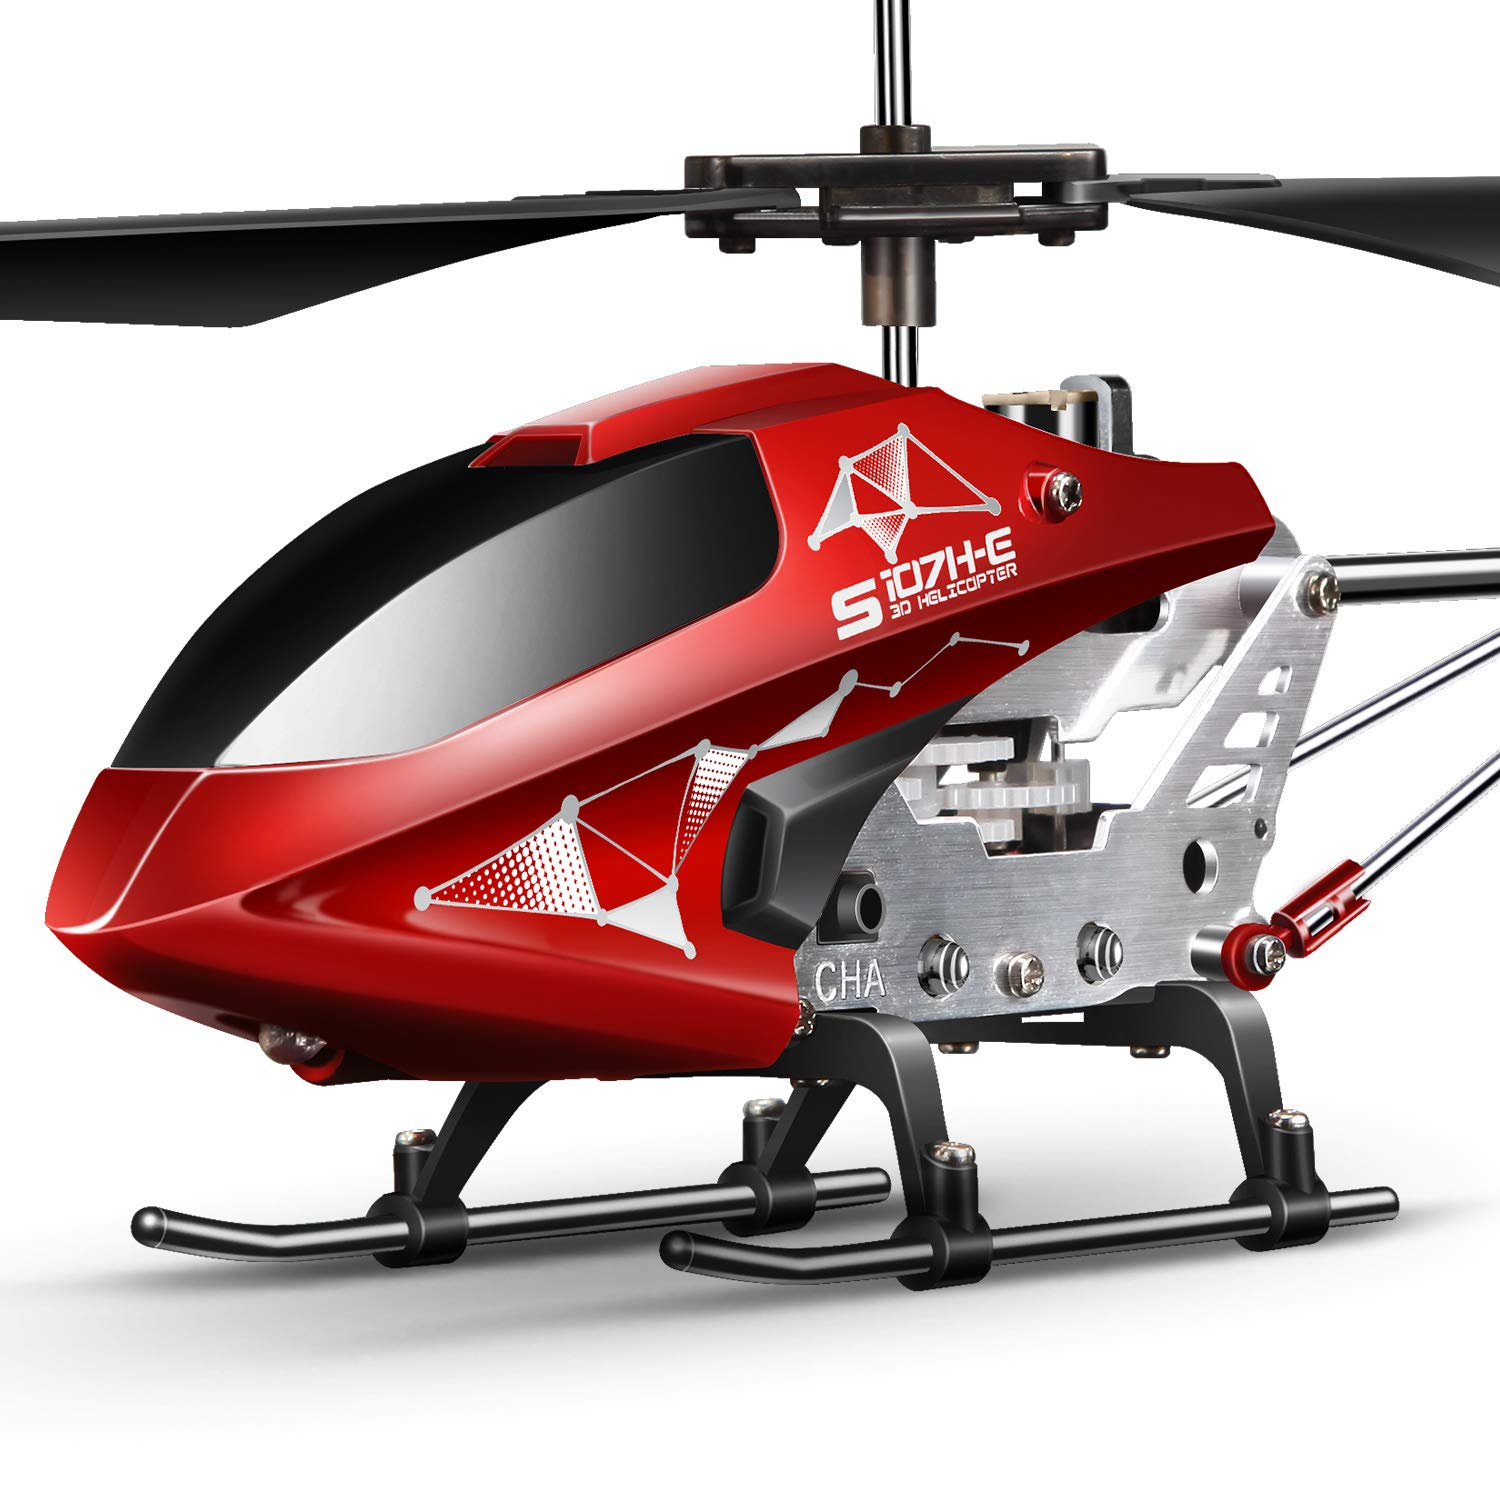 Remote Control Helicopter, SYMA S107H Aircraft with Altitude Hold, One Key take Off/Landing, 3.5 Channel, Gyro Stabilizer and High &Low Speed, LED Light for Indoor to Fly for Kids and Beginners